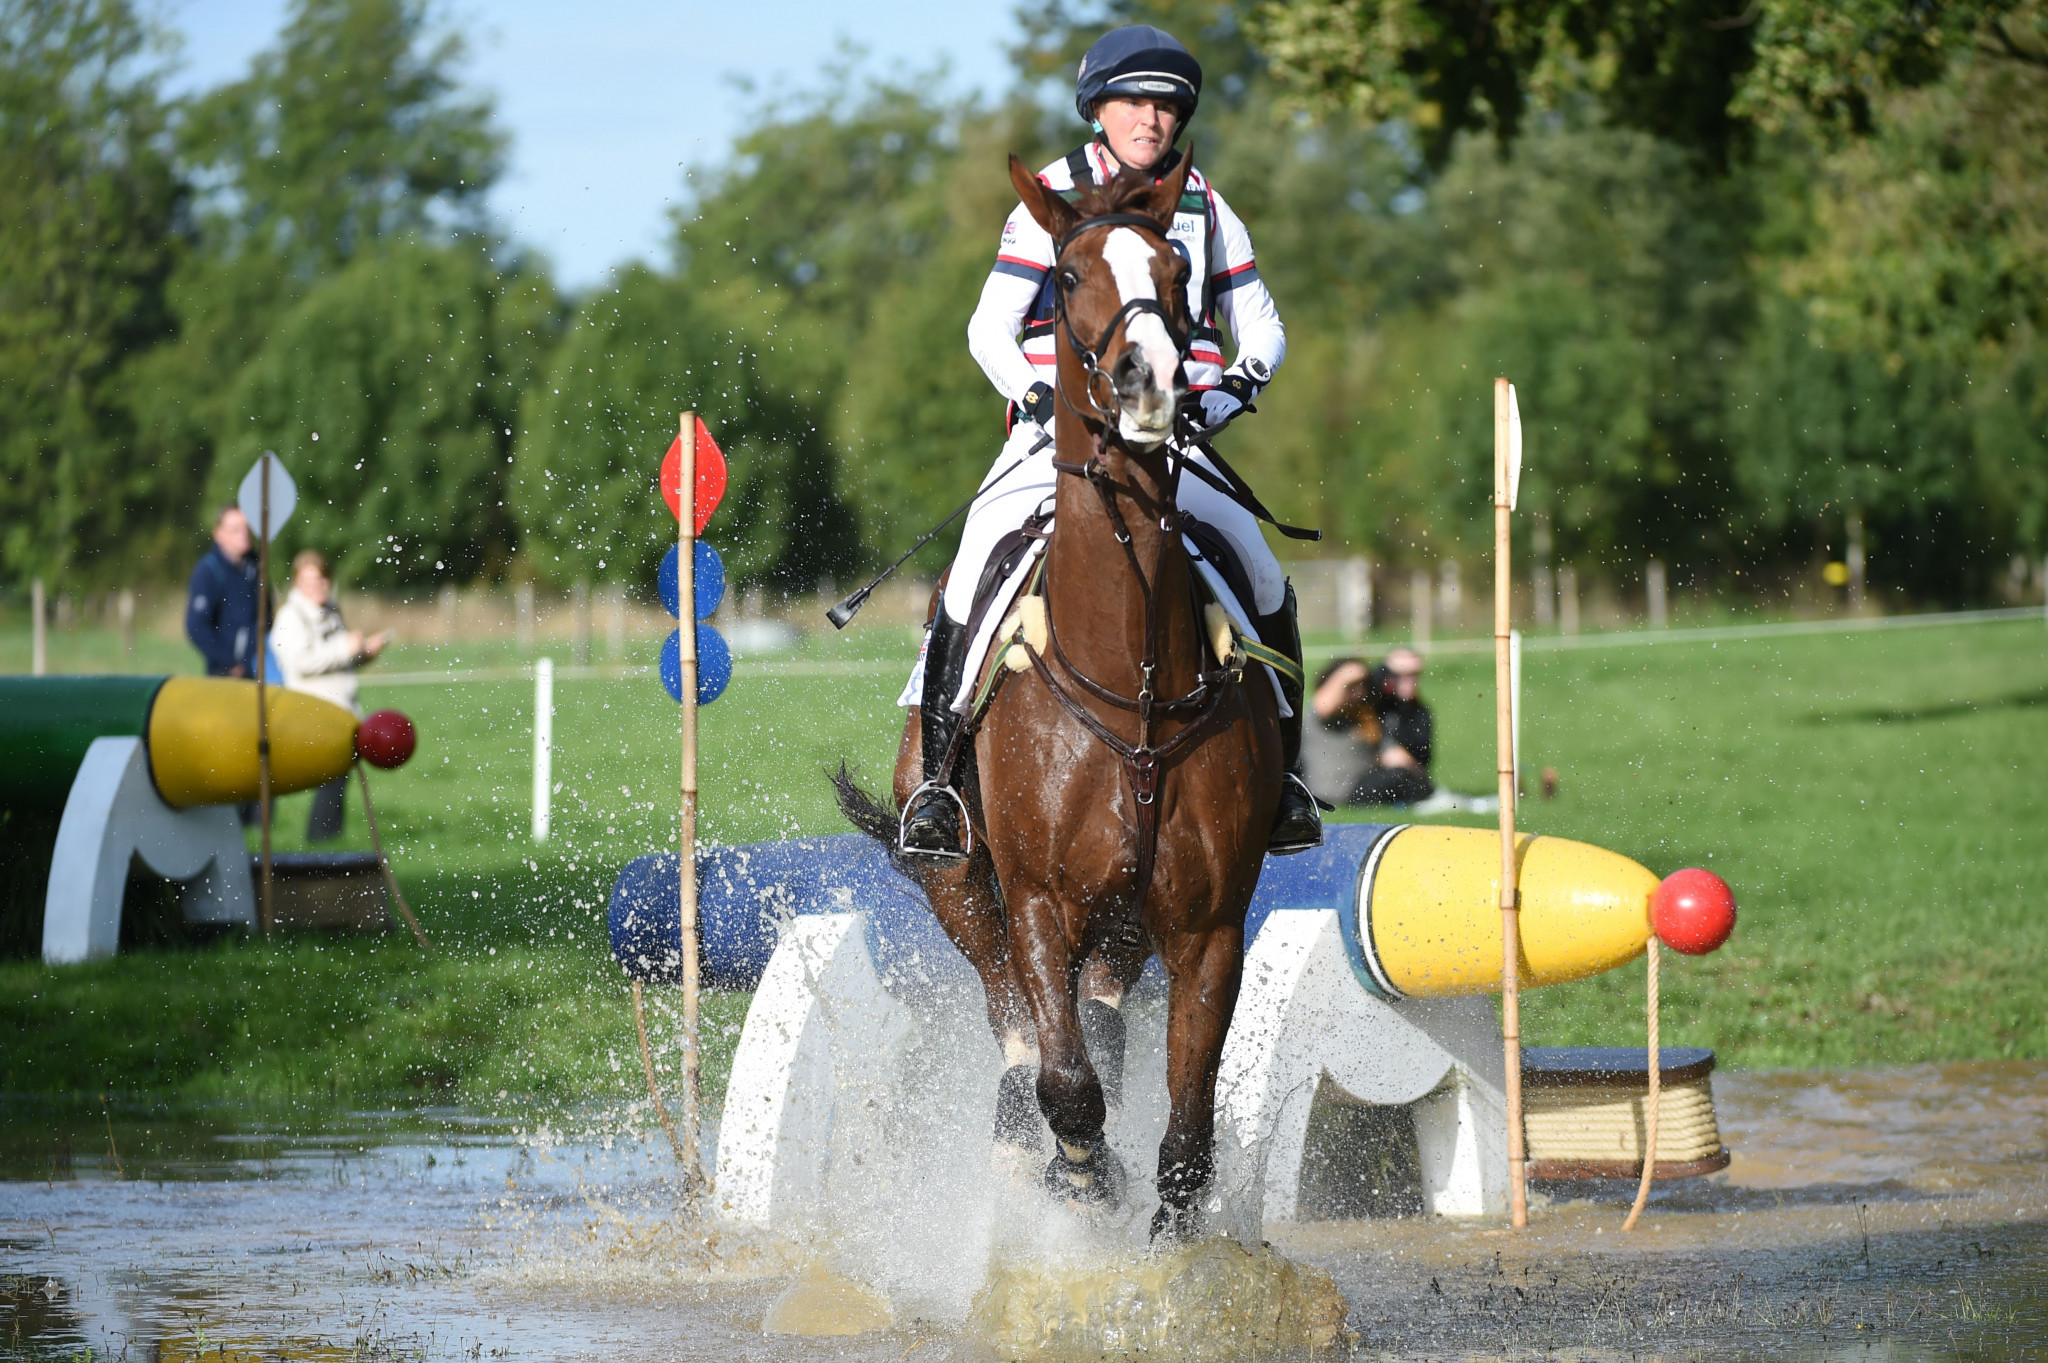 Britain's Georgina French competes in a cross-country event in Le Lion d'Angers in France last year ©Getty Images